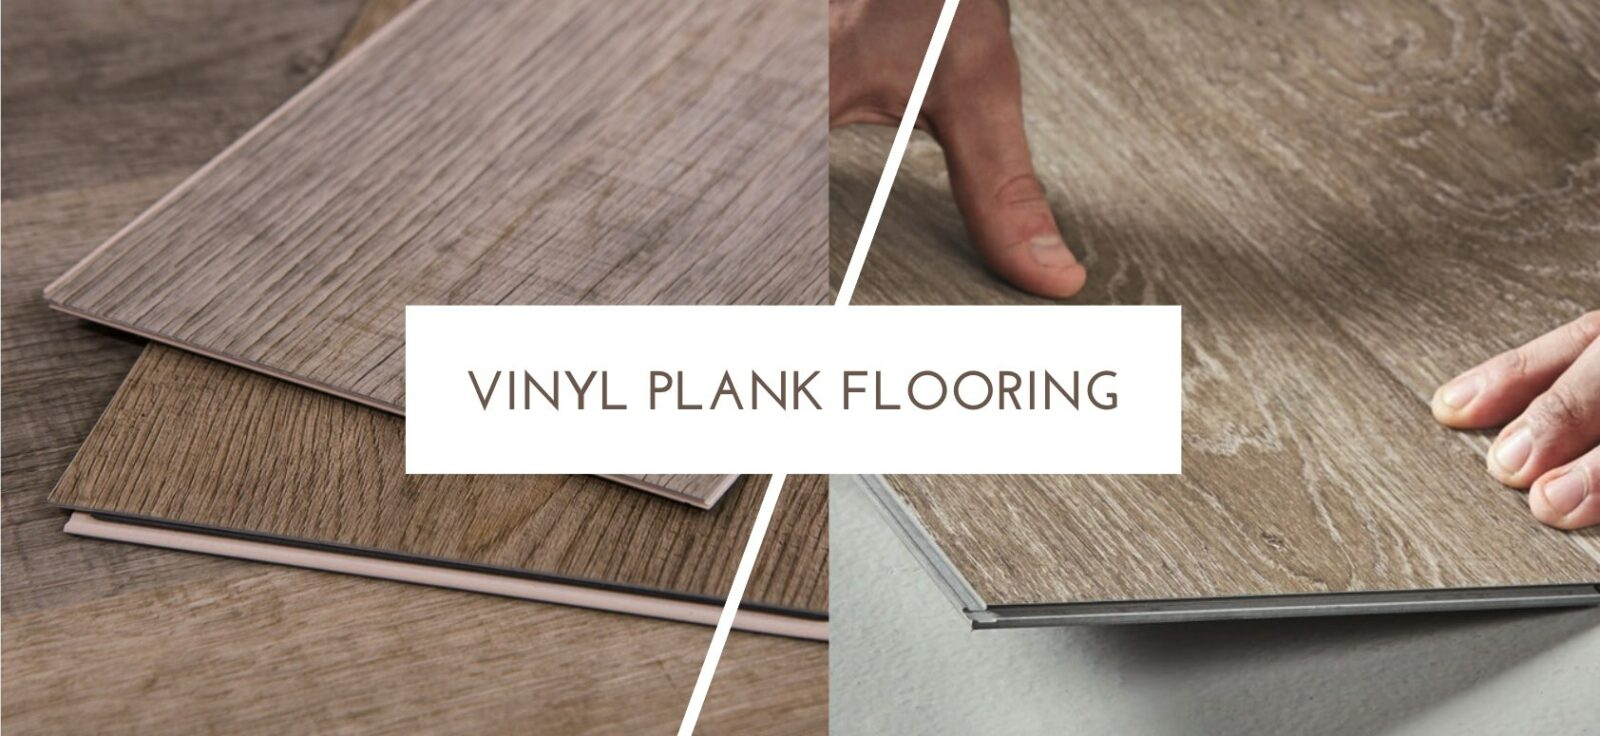 Vinyl Plank Flooring - Everything you need to know